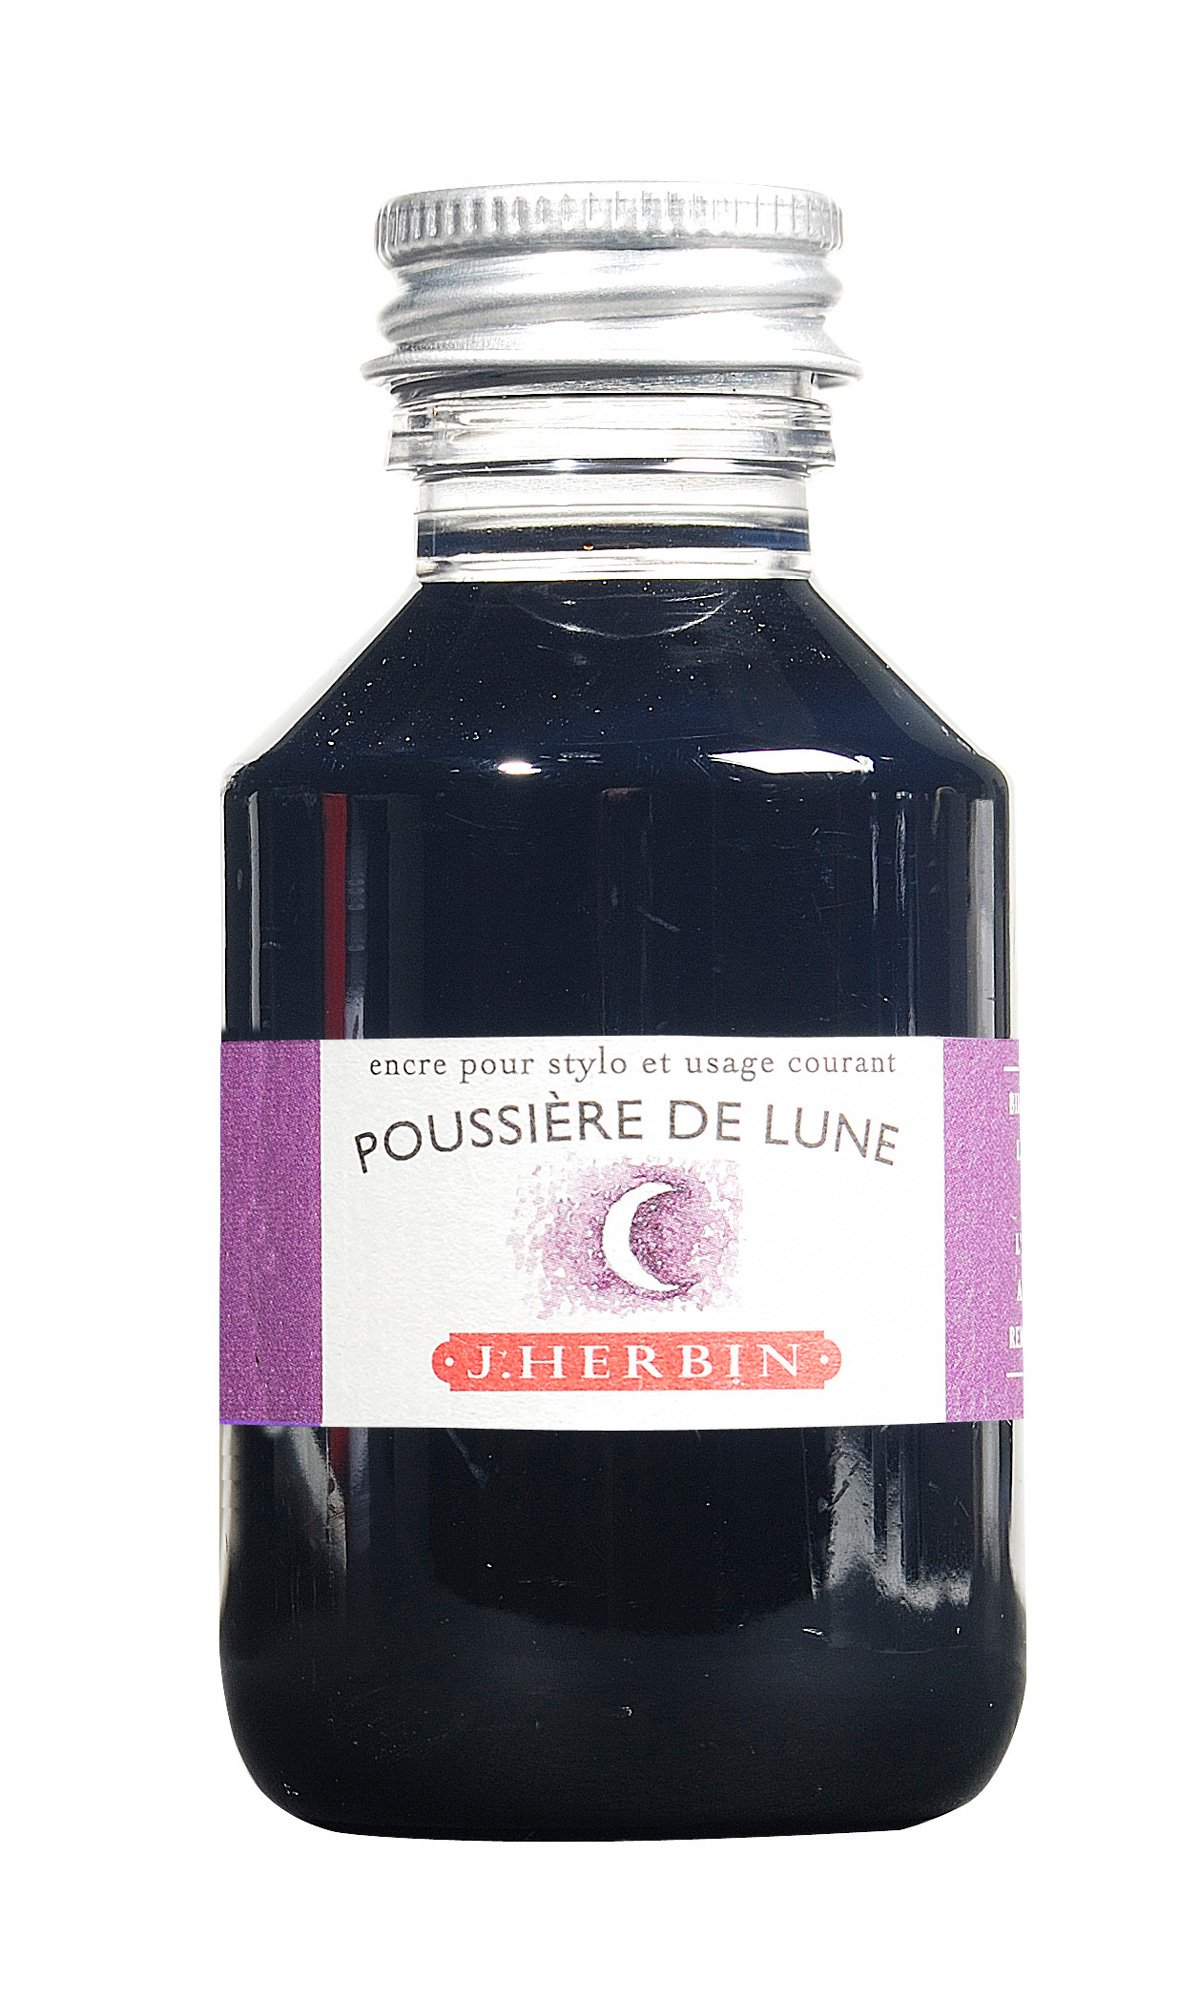 J. Herbin Fountain Pen Ink - 100 ml Bottled - Poussiere de Lune by Herbin